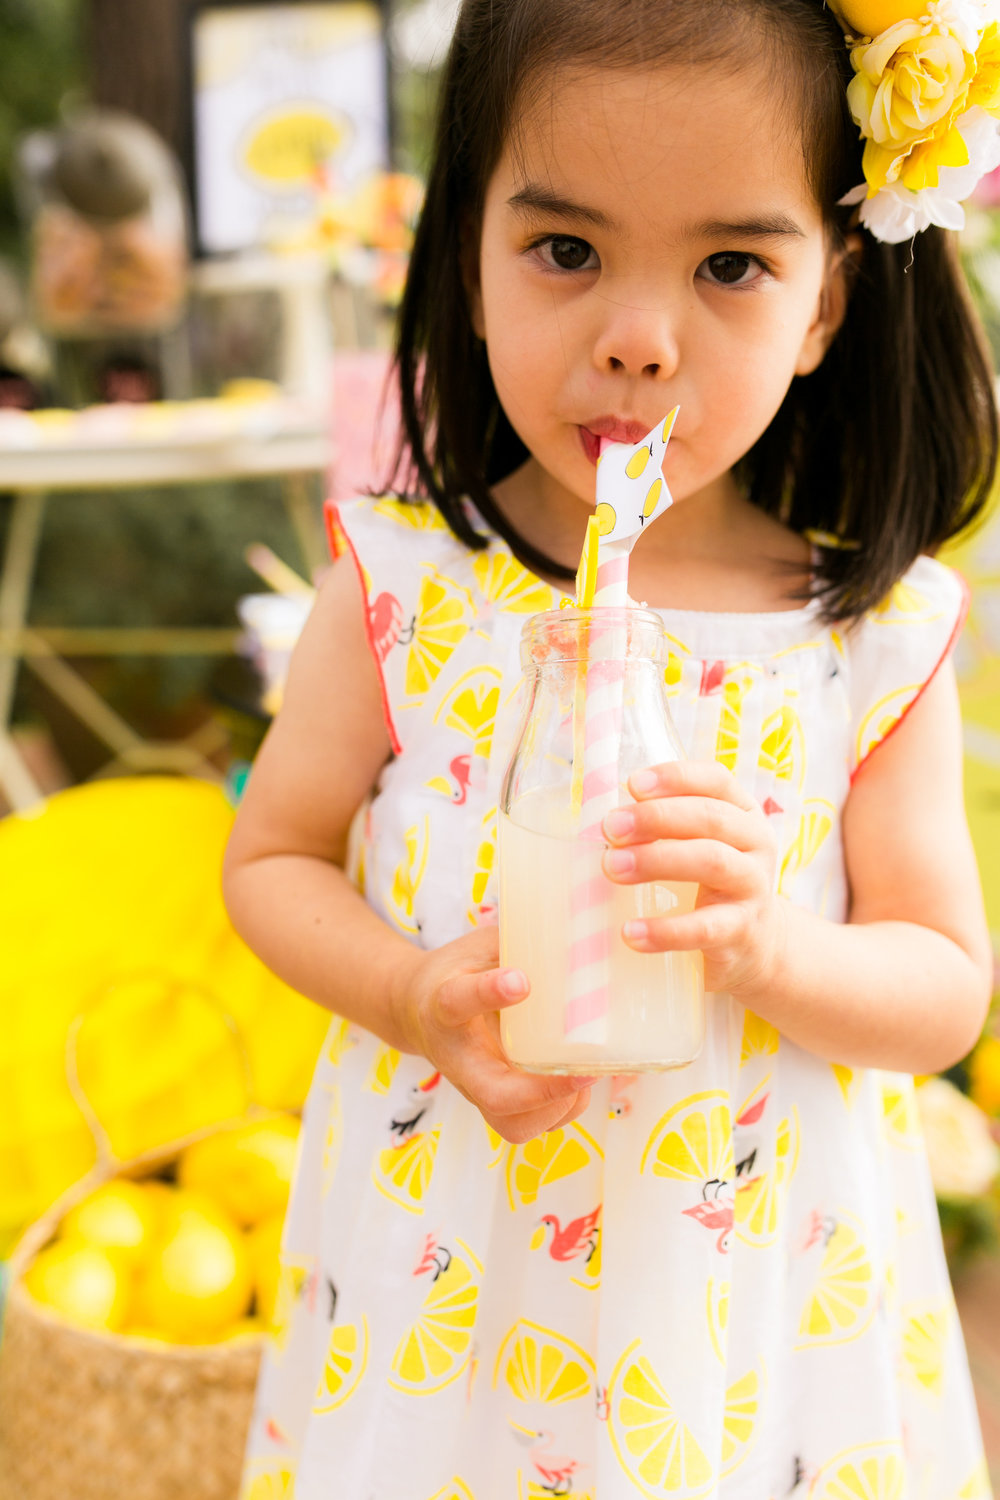 Lemonade Kids Birthday Party - Little girl Party Dress